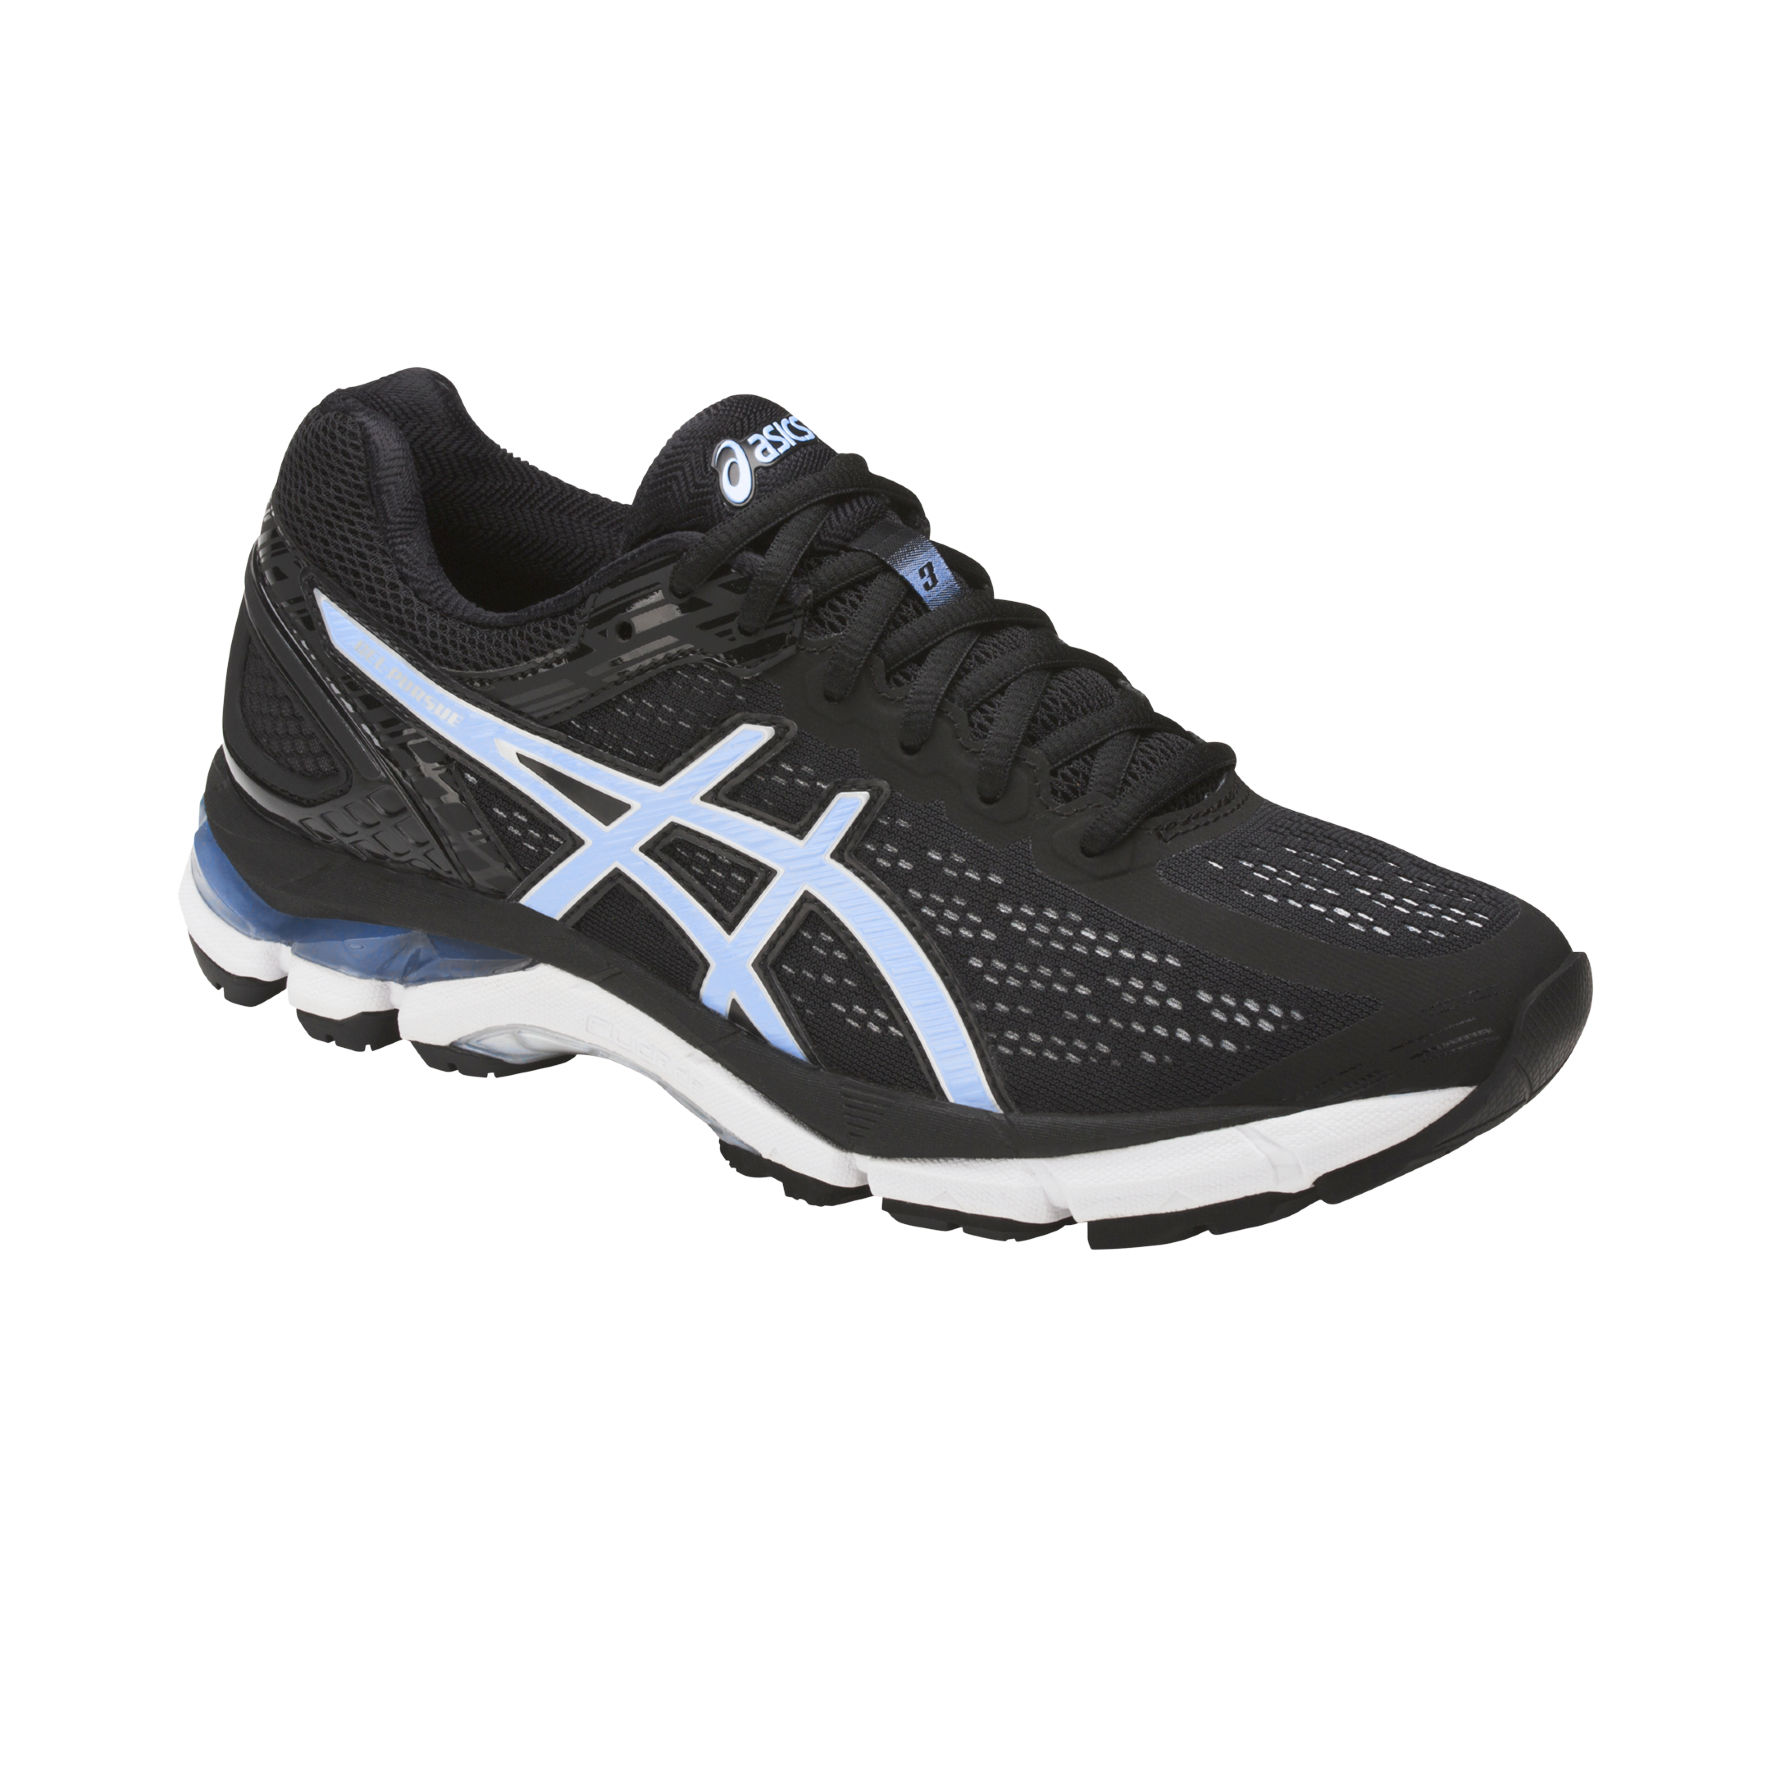 Asics Lady Gel Pursue 3 in Schwarz Blau